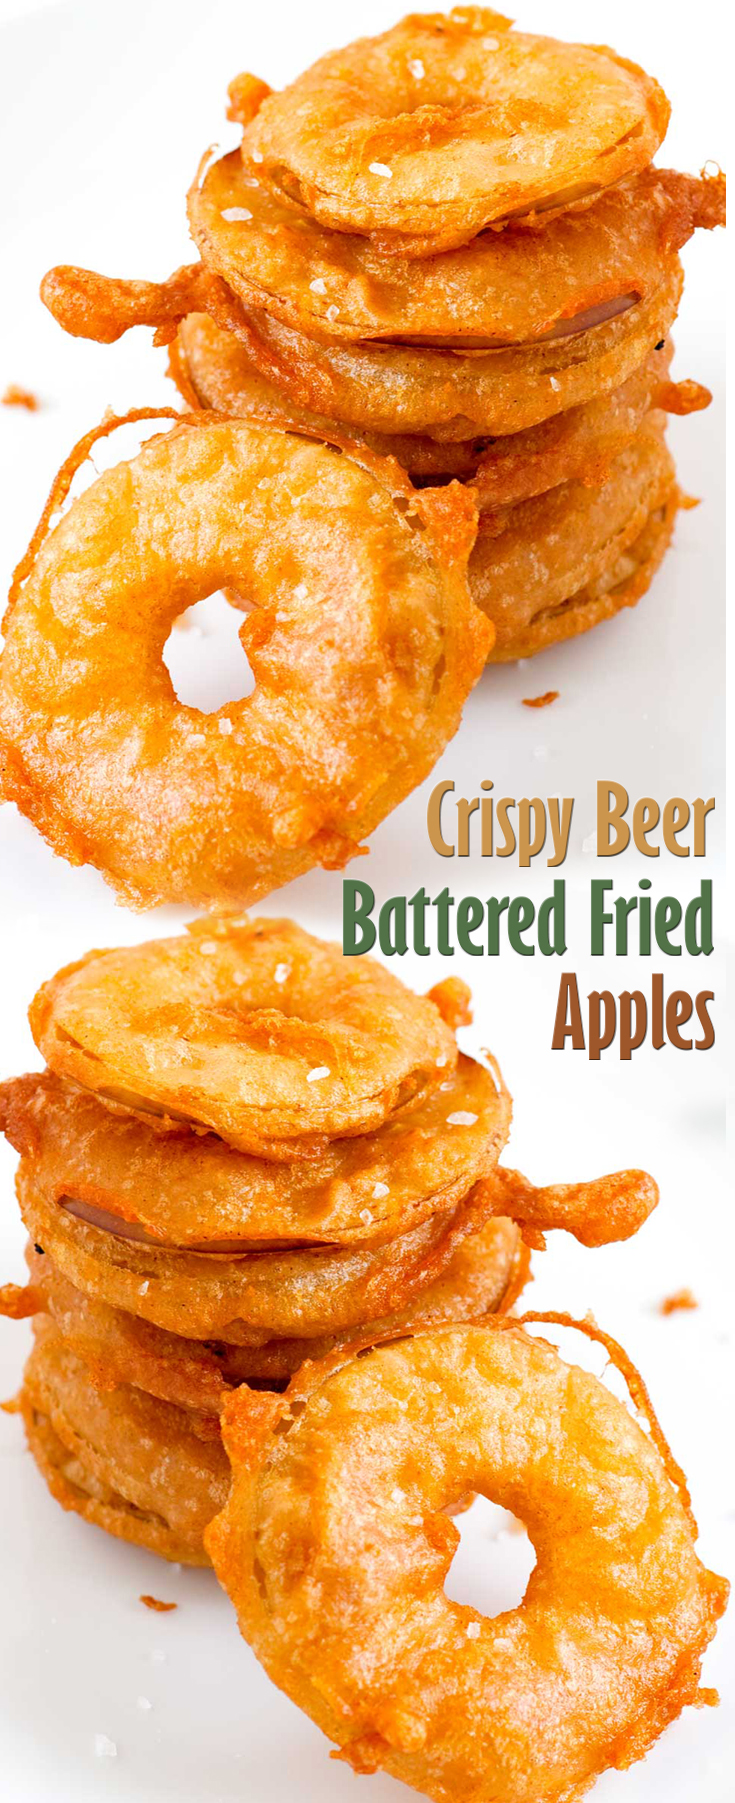 Dainty Problems This Click Here Crispy Beer Battered Fried Apples Luck S Fried Apples Recipes Fried Apples Recipe Without Butter nice food Fried Apples Recipe